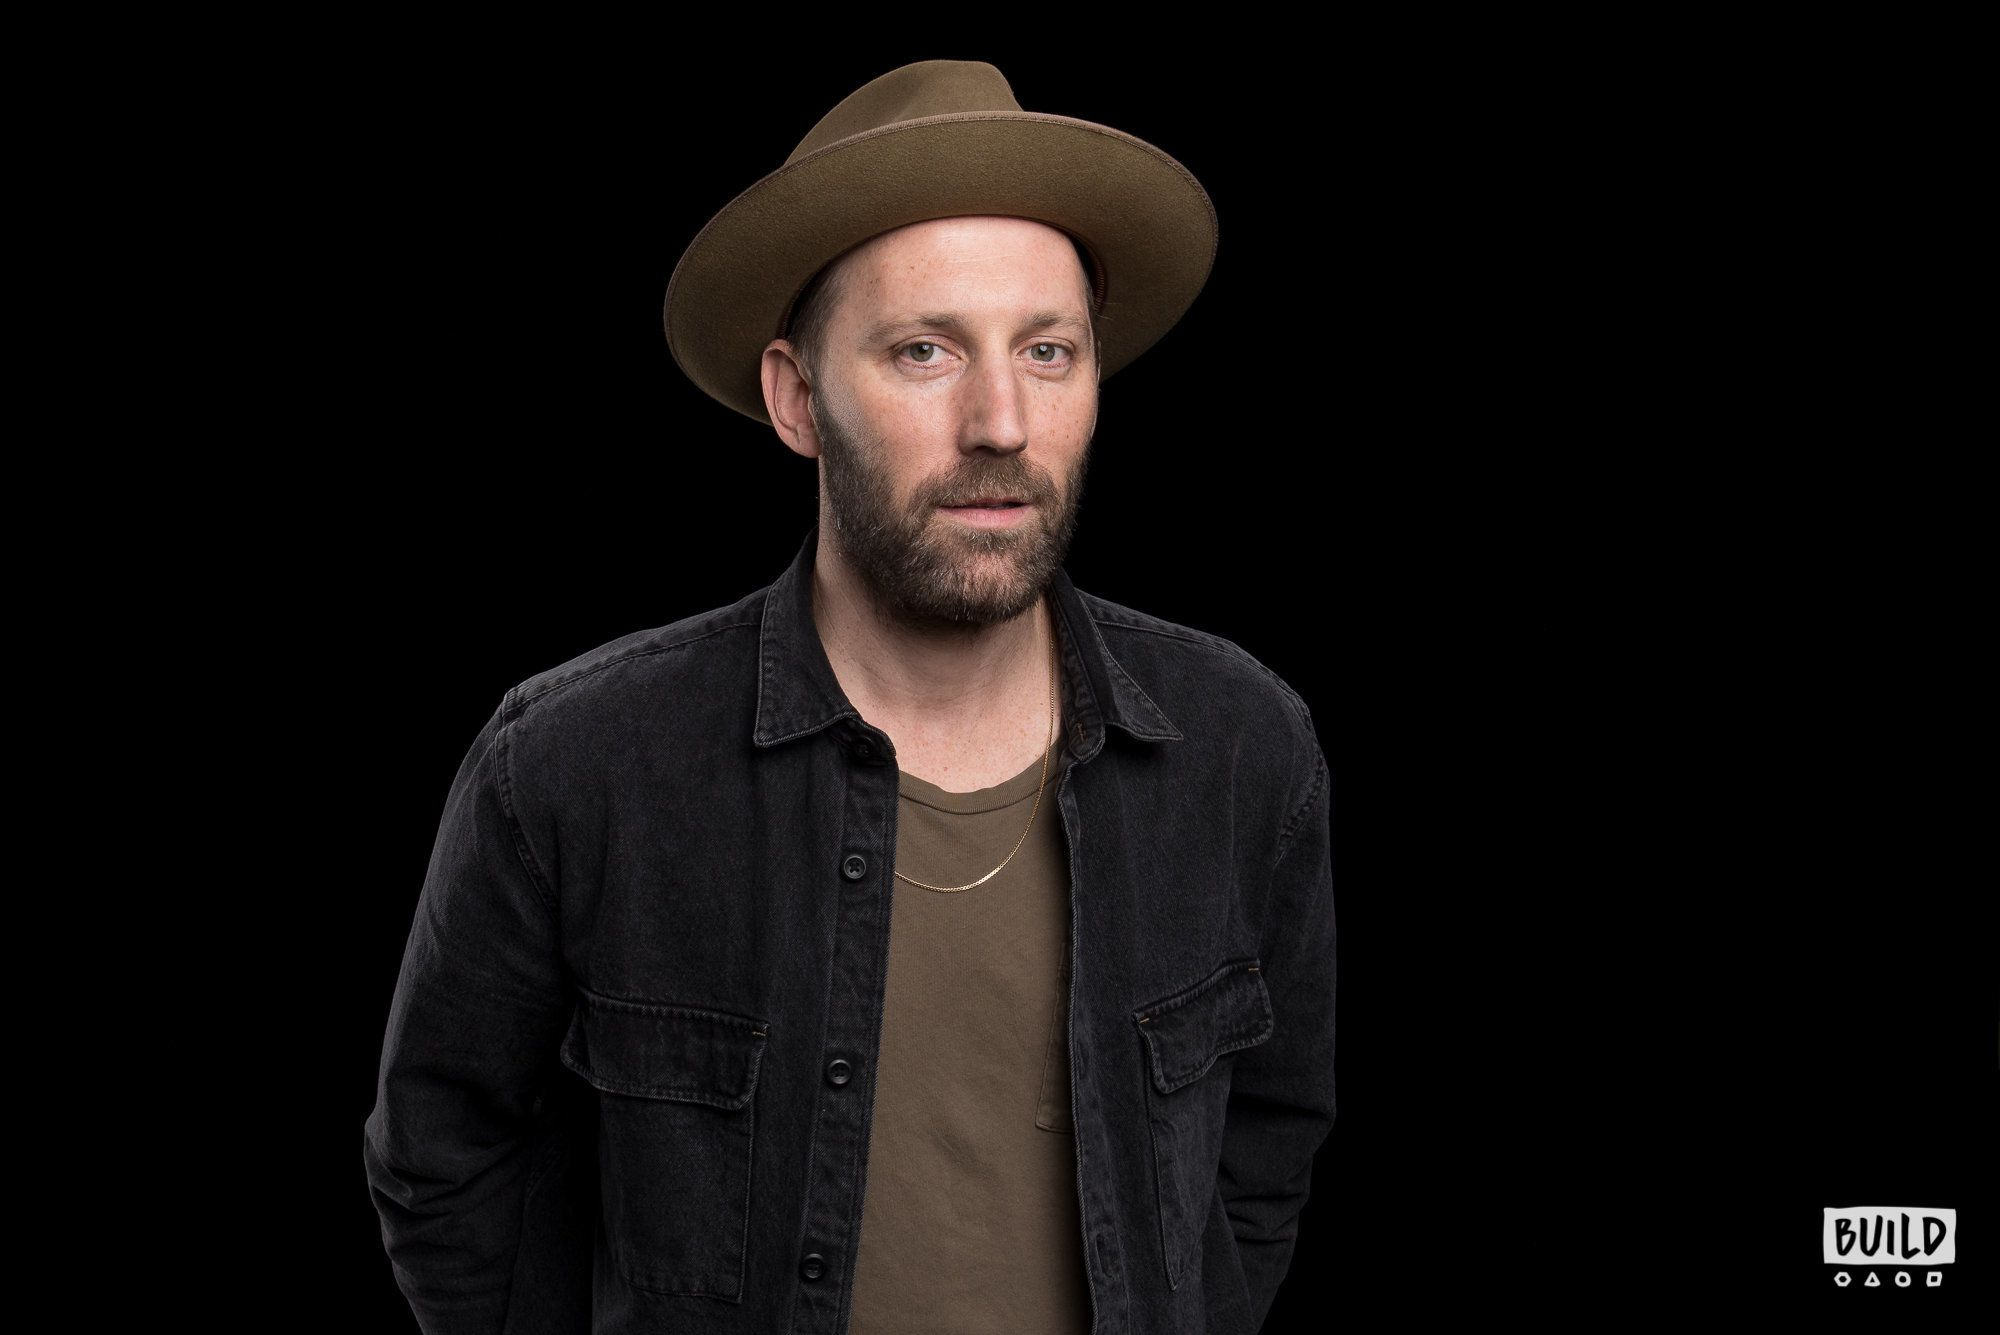 Mat Kearney Gets A 'Second Wind' With New Album And Tour